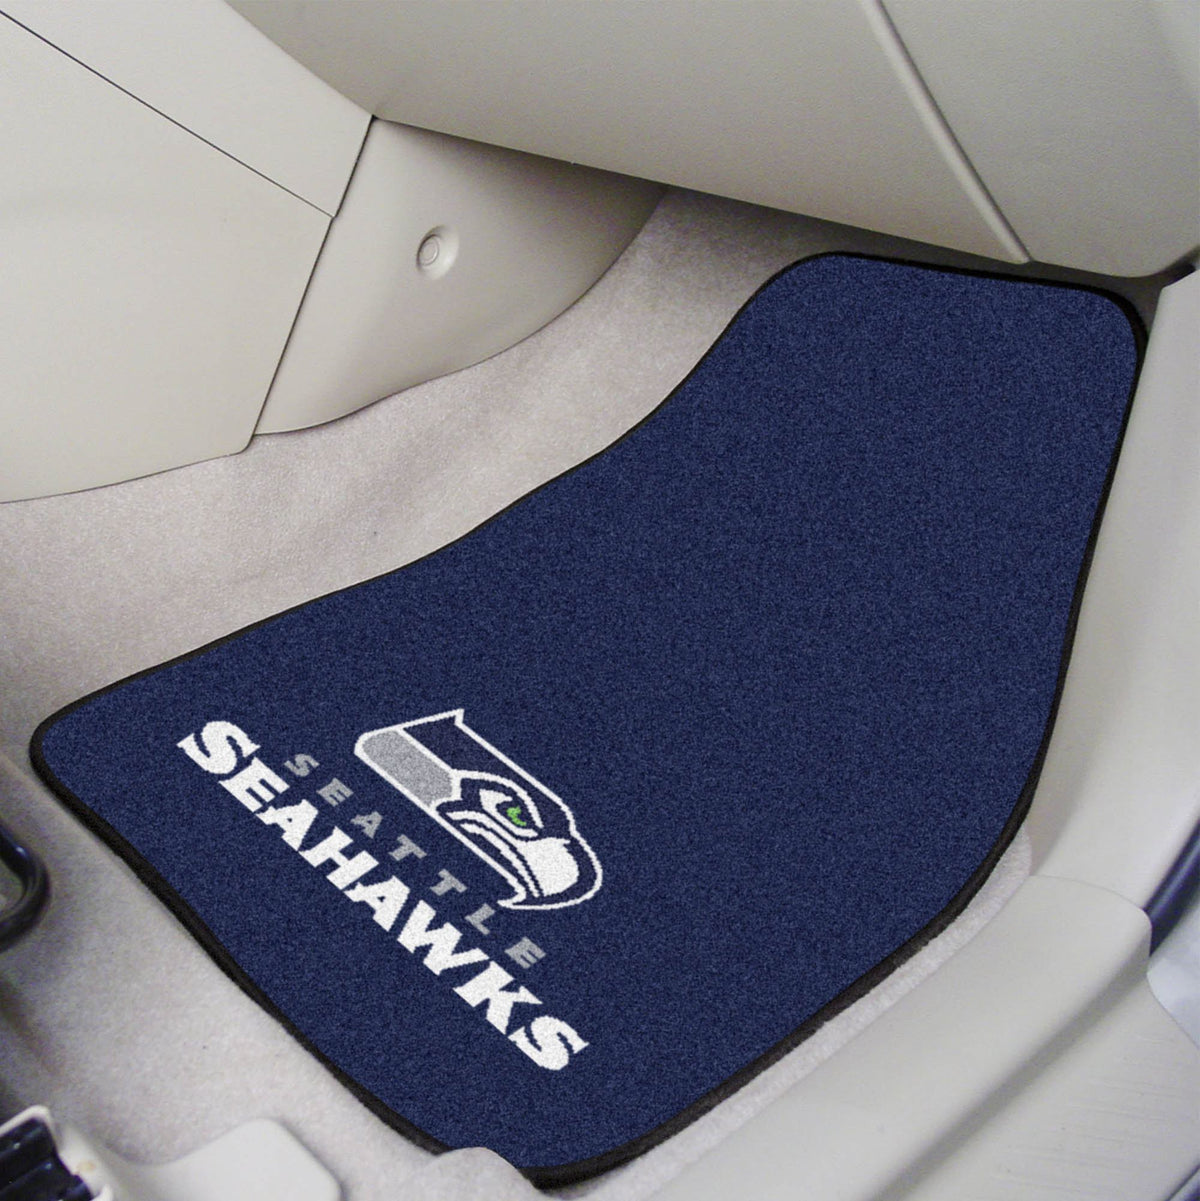 "NFL - 2-pc Carpet Car Mat Set, 17"" x 27"" NFL Mats, Front Car Mats, 2-pc Carpet Car Mat Set, NFL, Auto Fan Mats Seattle Seahawks"